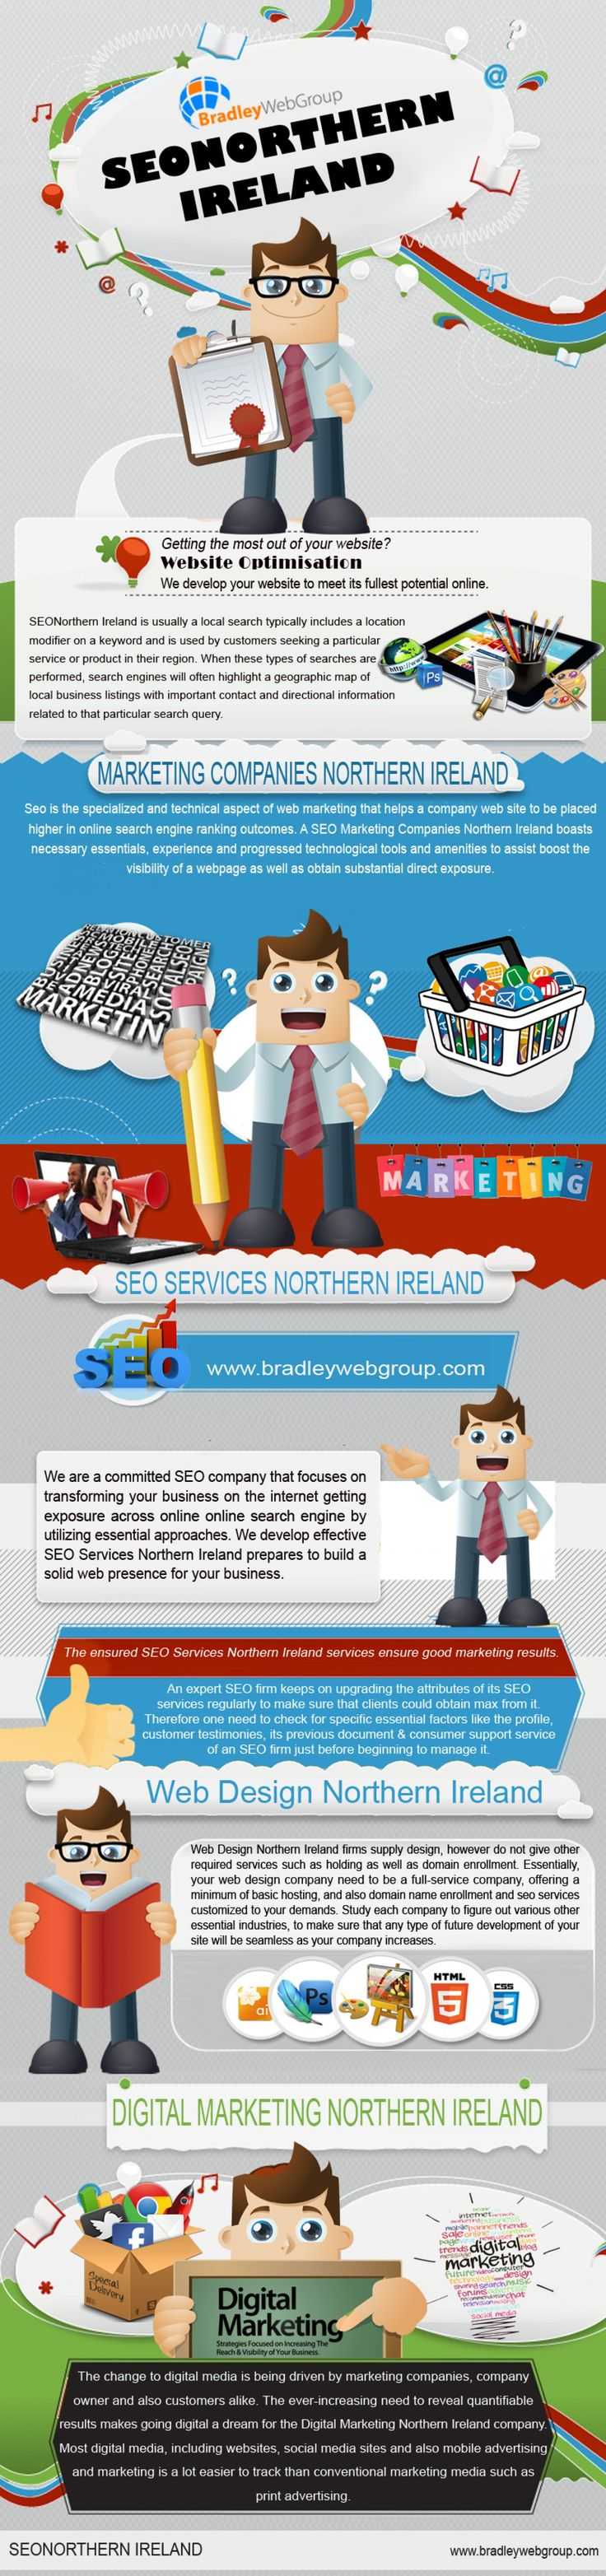 A well-crafted web site can bring you new or additional online traffic resulting in new clients and customers. Click this site http://bradleywebgroup.com/ for more information on Web design northern Ireland. First impressions matter, so work with experts from Web design Northern Ireland to capture the image or branding that you want to convey to your Internet visitors. Follow Us http://seonorthernireland.blogspot.com